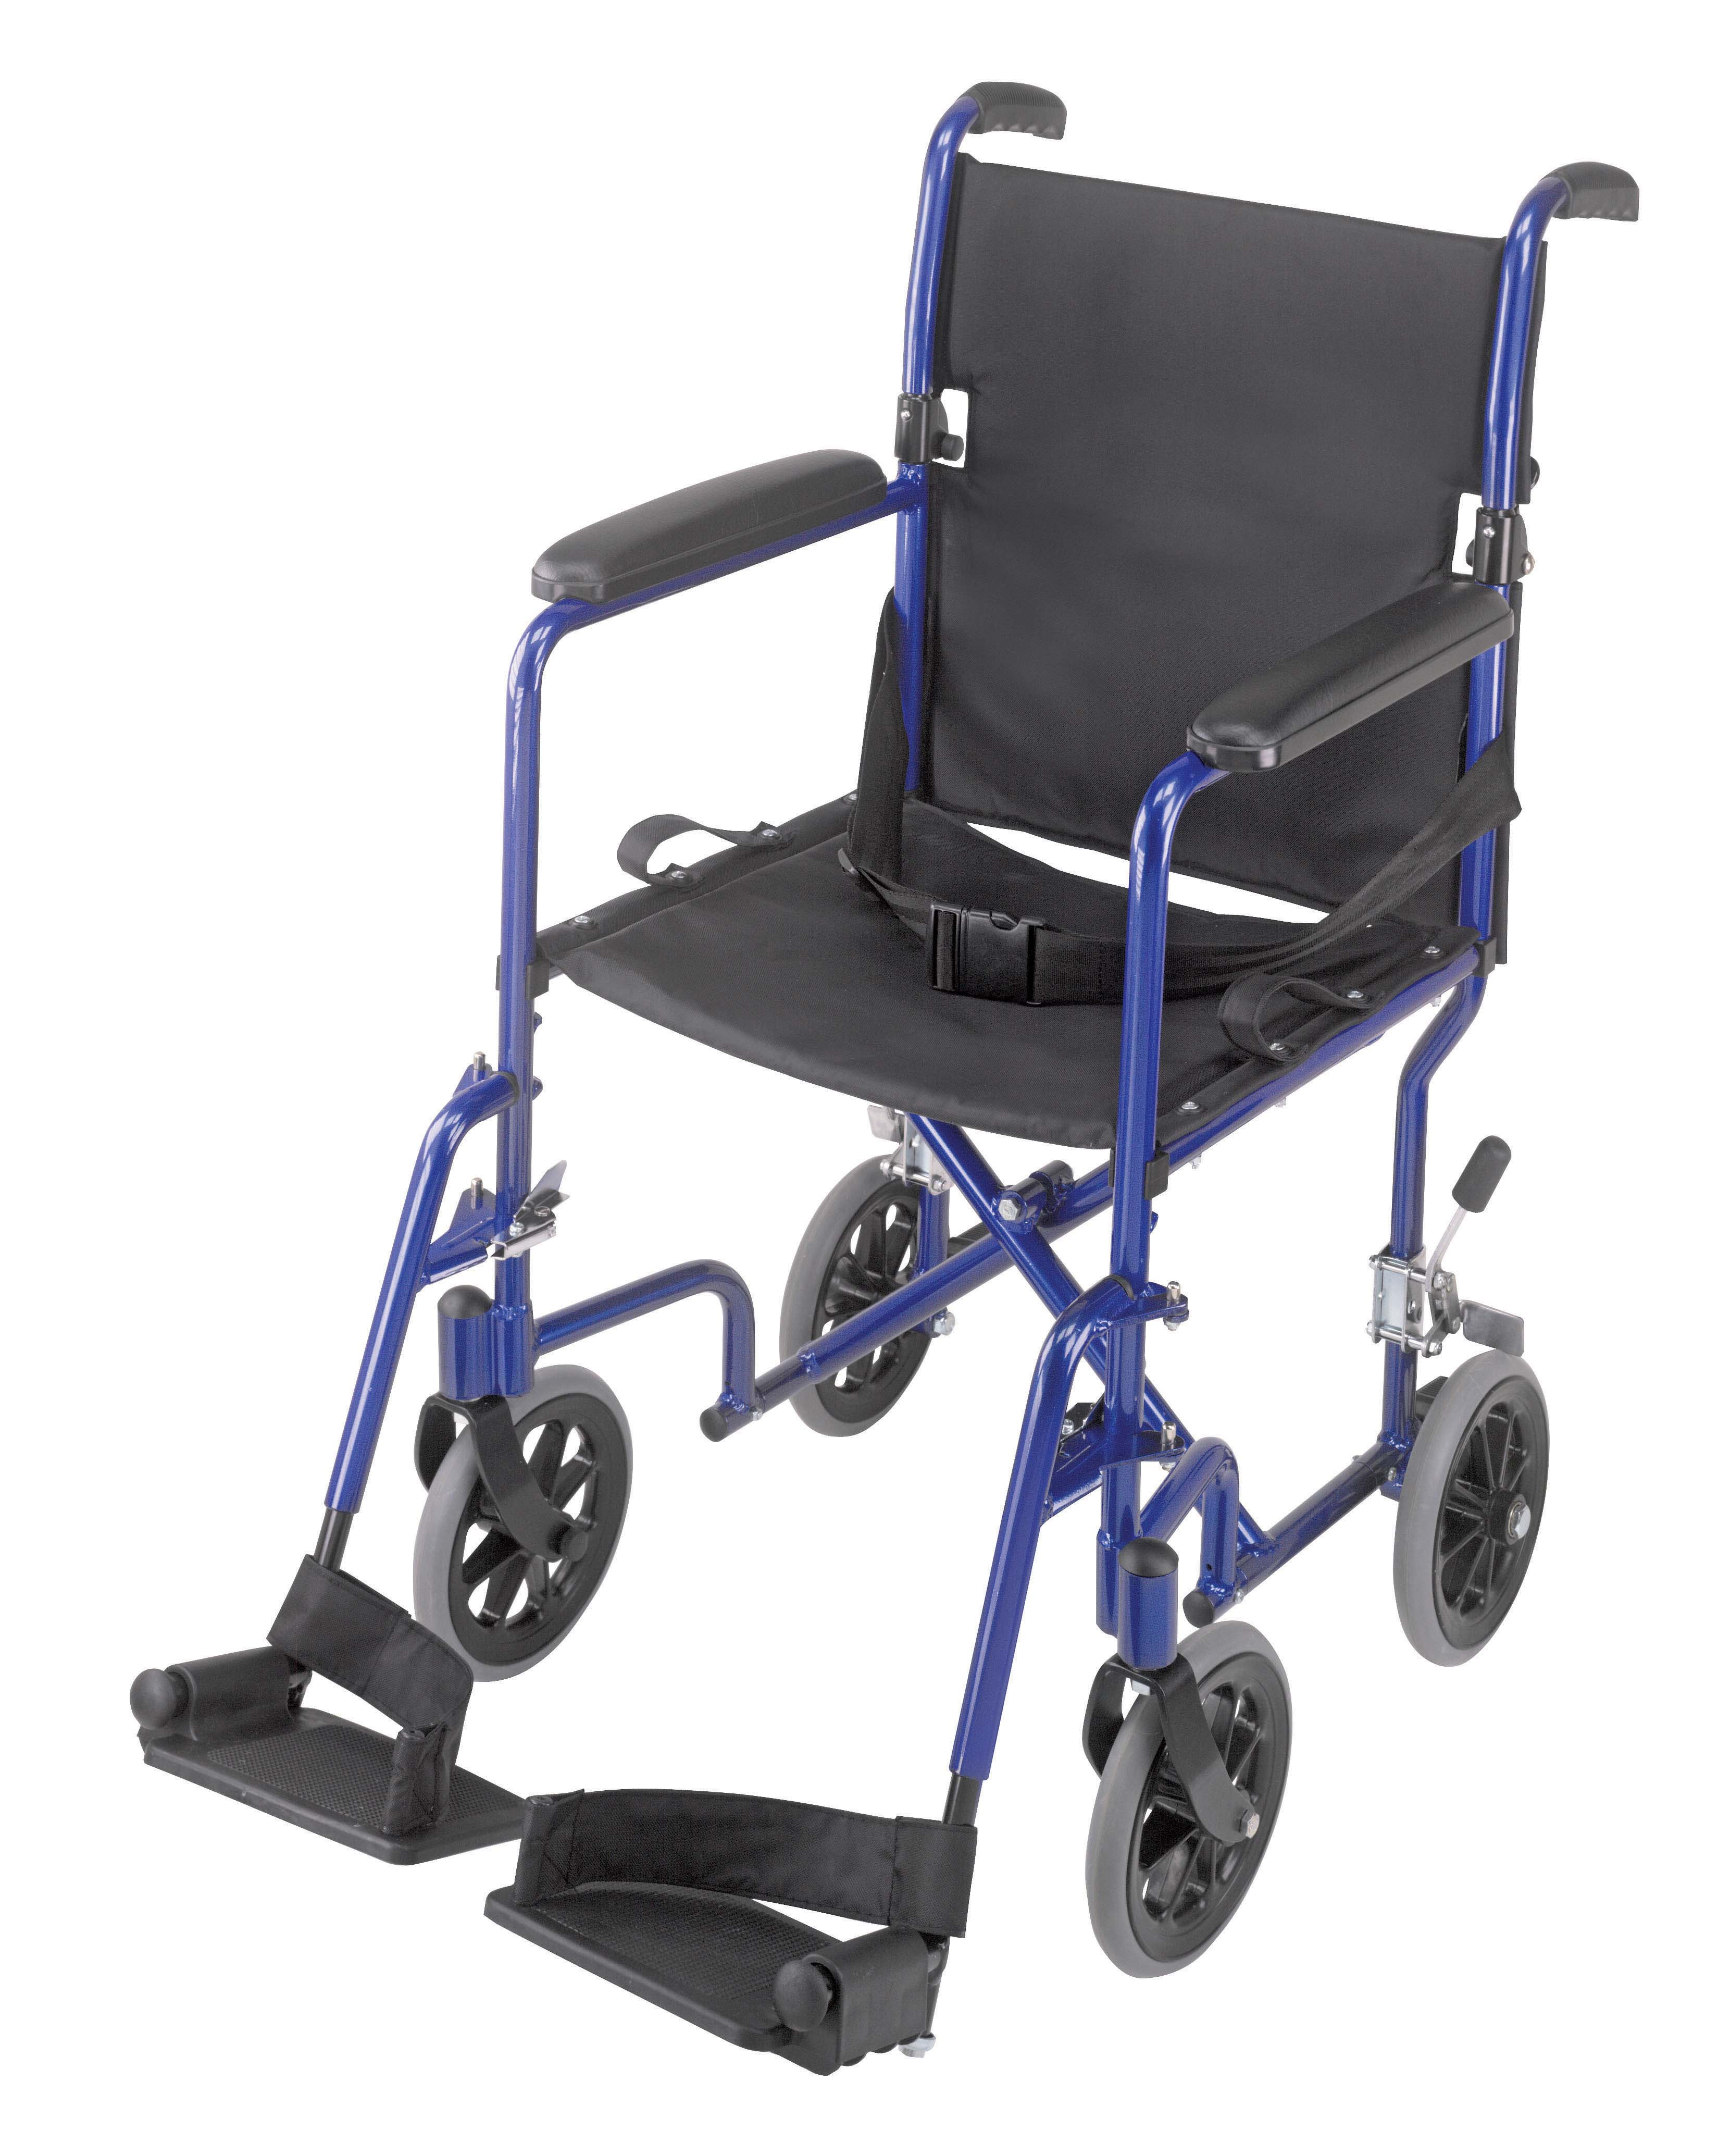 19-ultra-lightweight-aluminum-transport-chair-titanium-501-1052-4100-lr.jpg